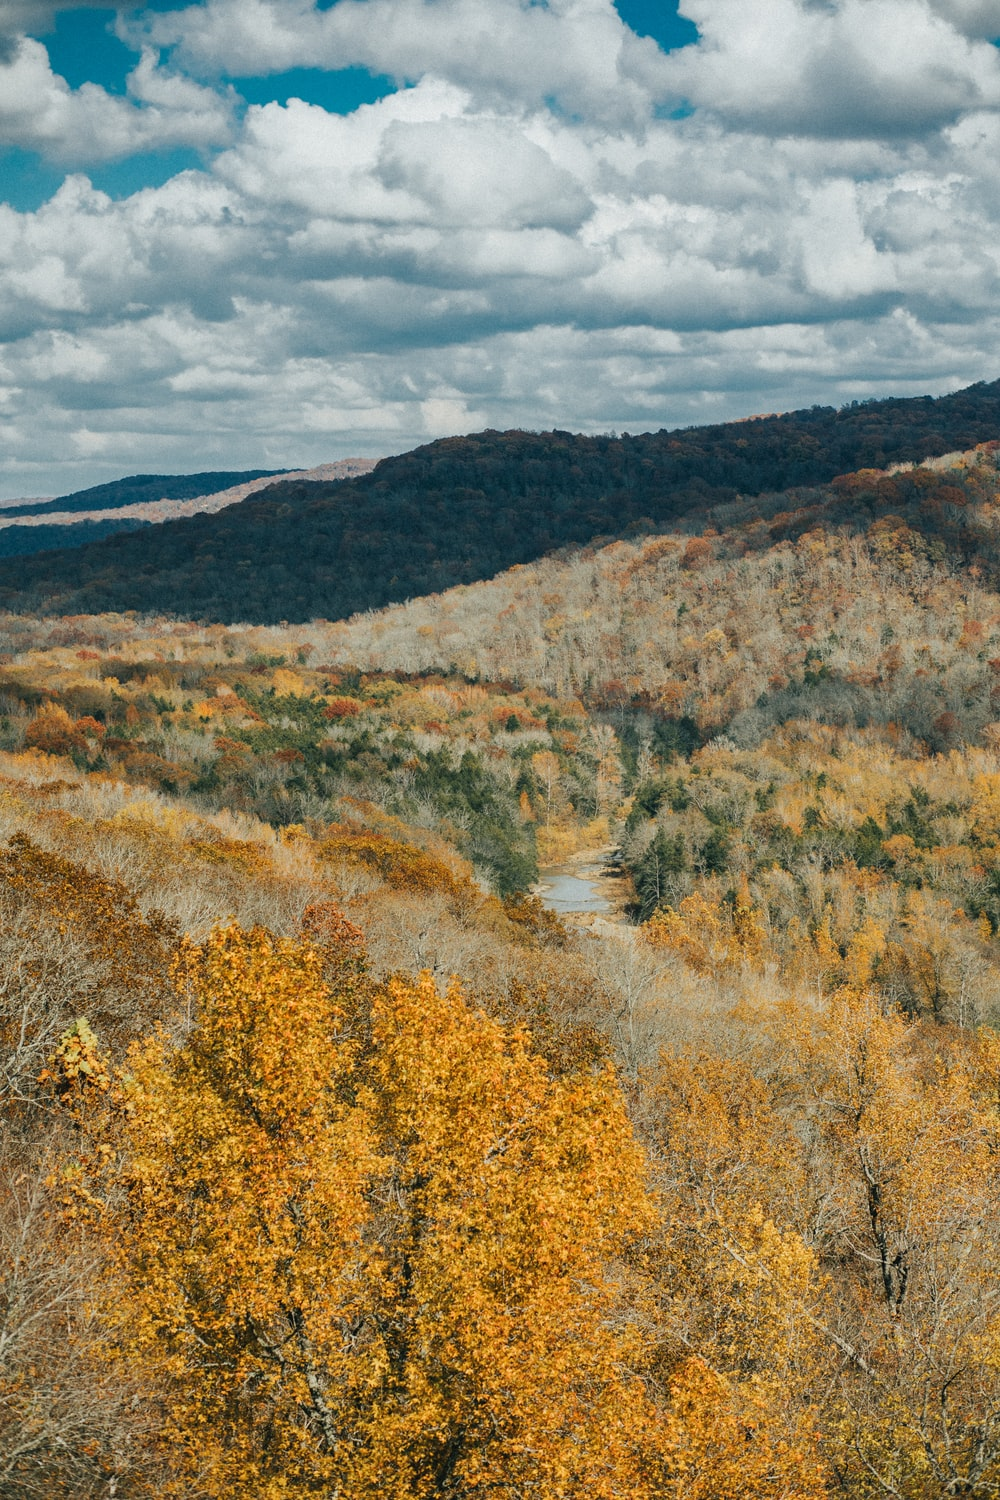 brown and green trees near brown mountain under white clouds during daytime